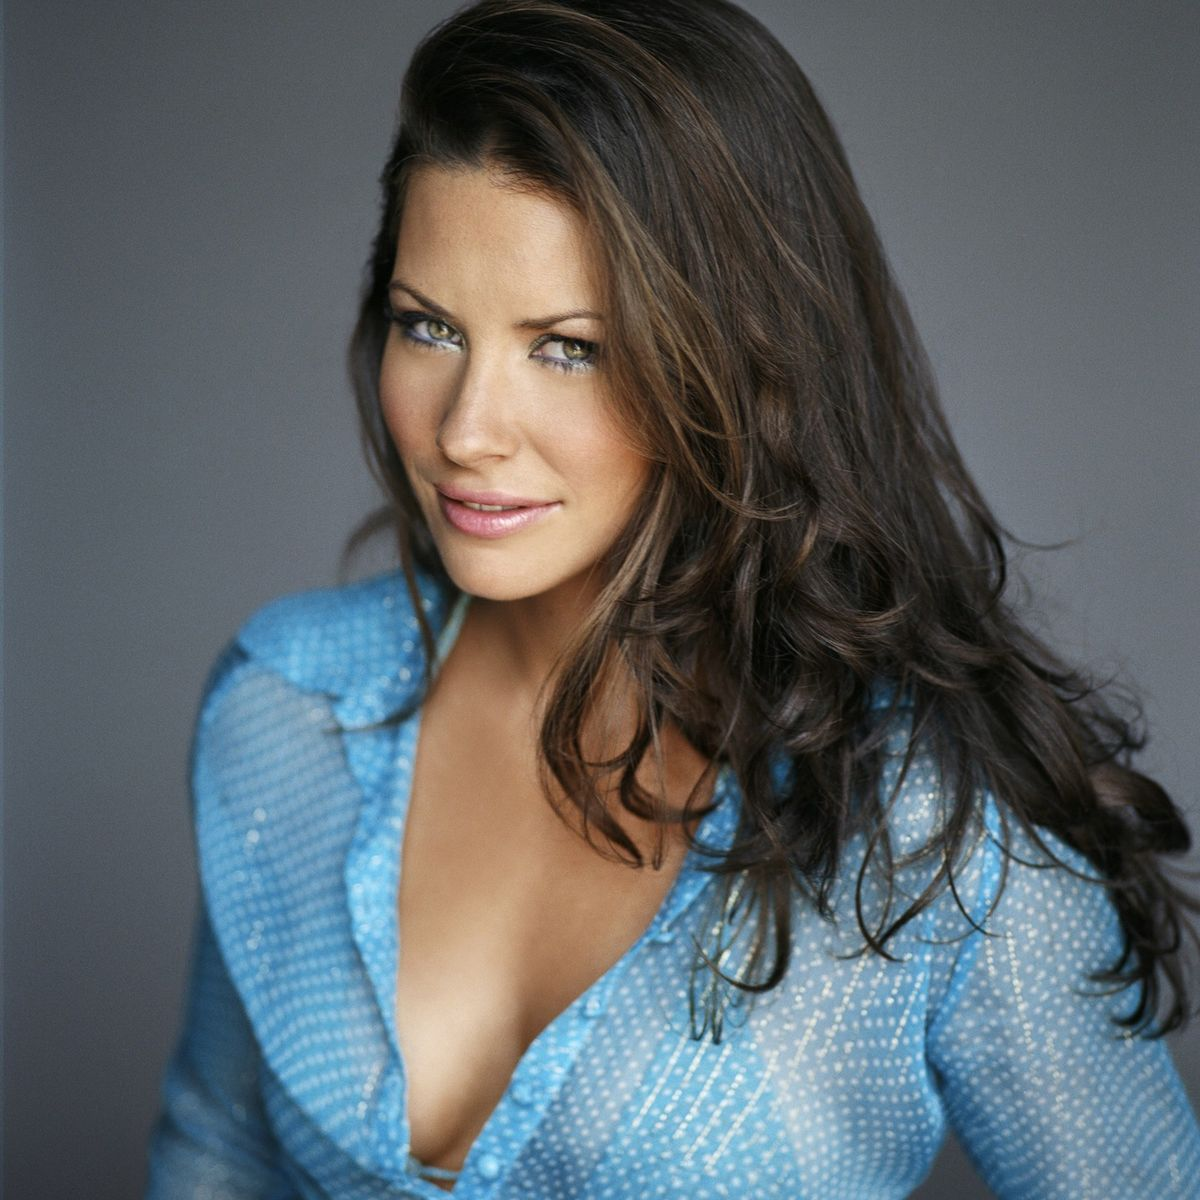 Evangeline Lilly nudes (63 foto and video), Tits, Paparazzi, Feet, cleavage 2006